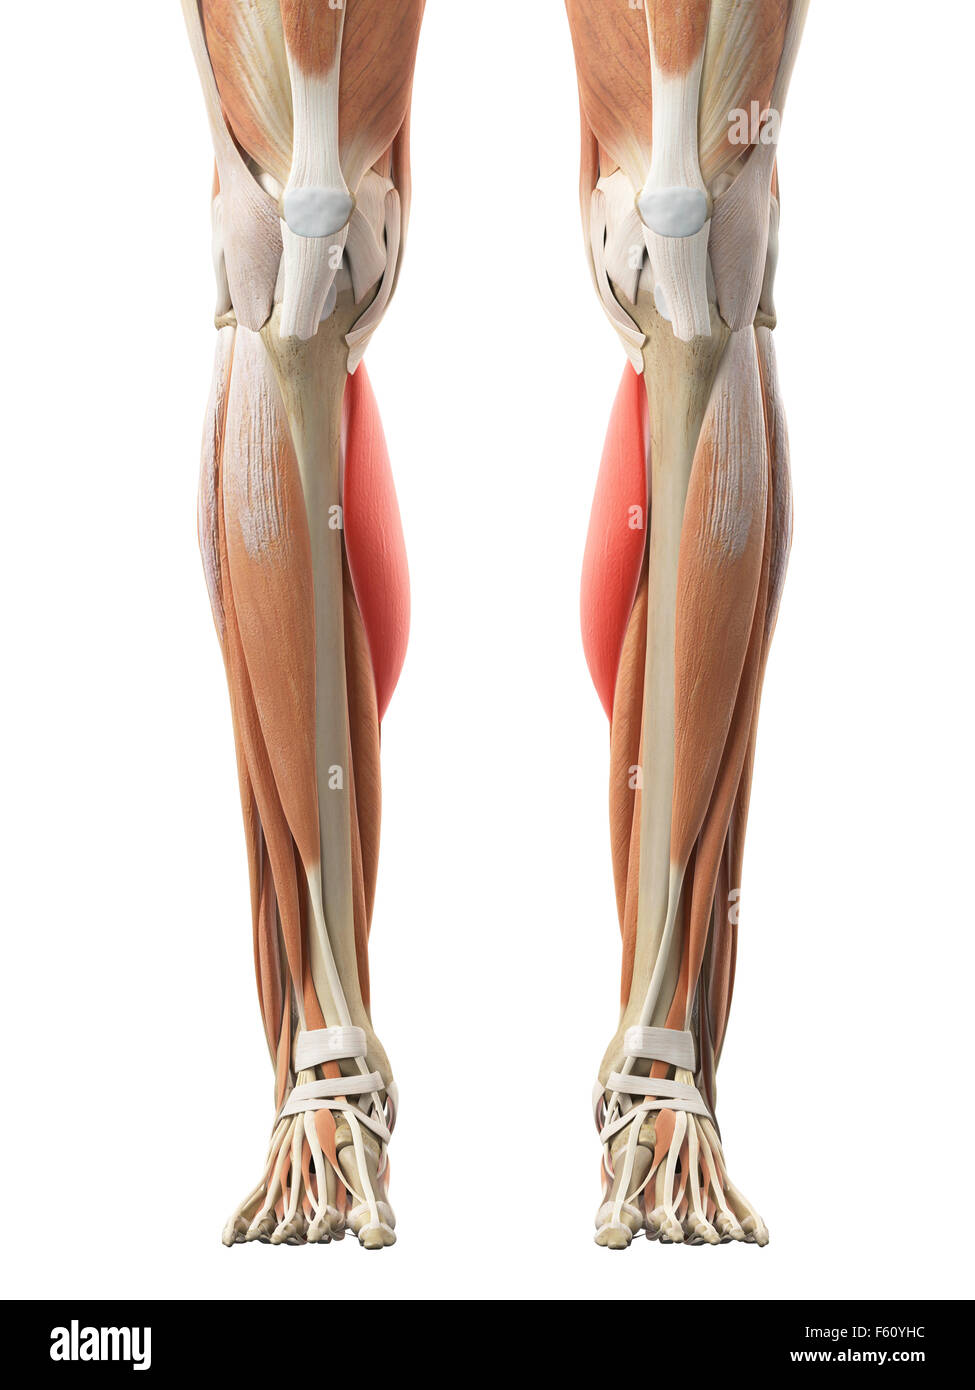 Gastrocnemius Medial Head Stock Photos Gastrocnemius Medial Head